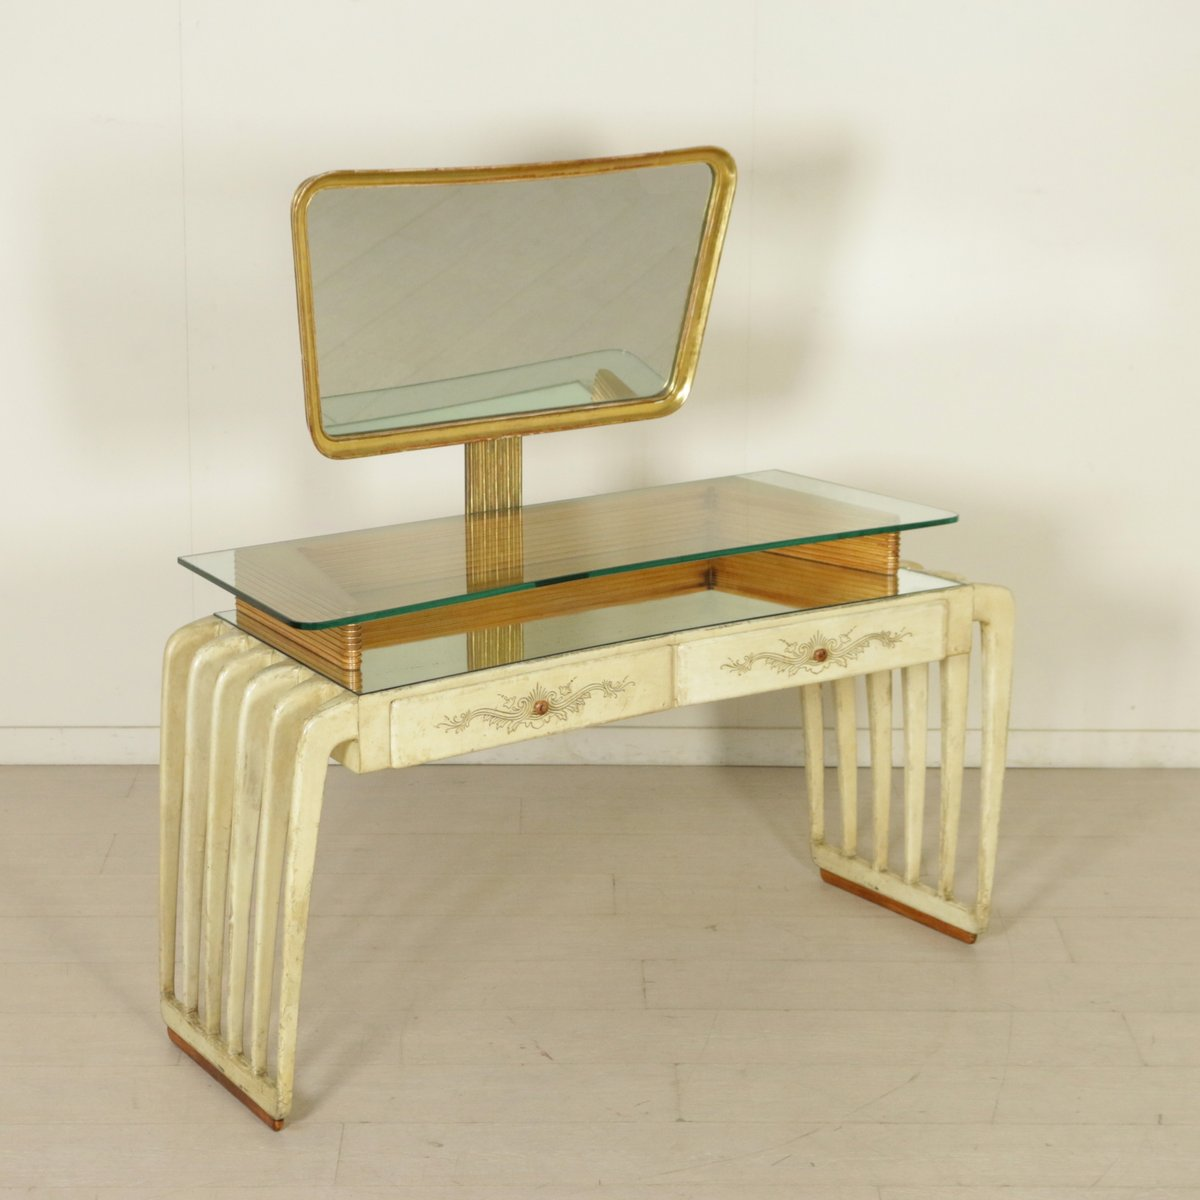 Glass dressing table - Vintage Italian Wood Parchment And Glass Dressing Table 1950s